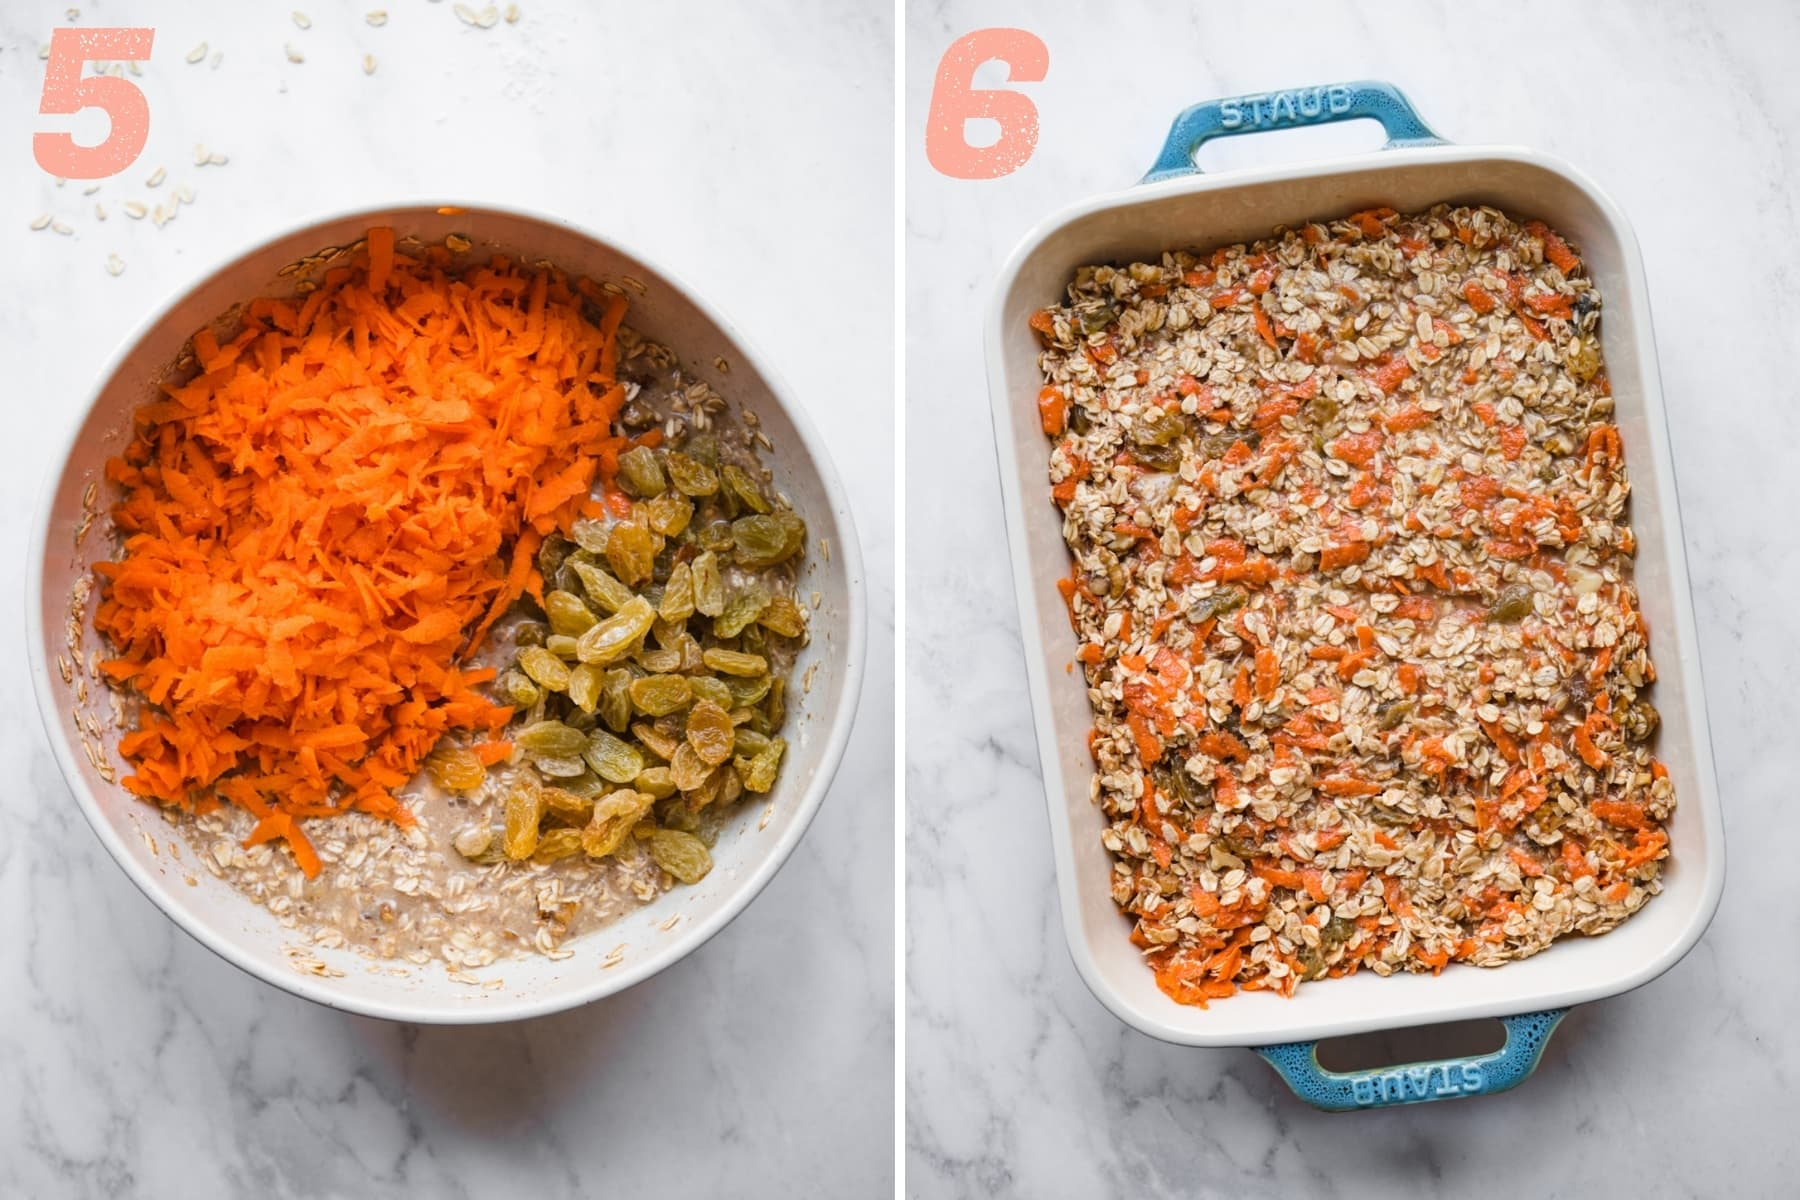 before and after mixing shredded carrots and raisins into carrot cake baked oatmeal batter.